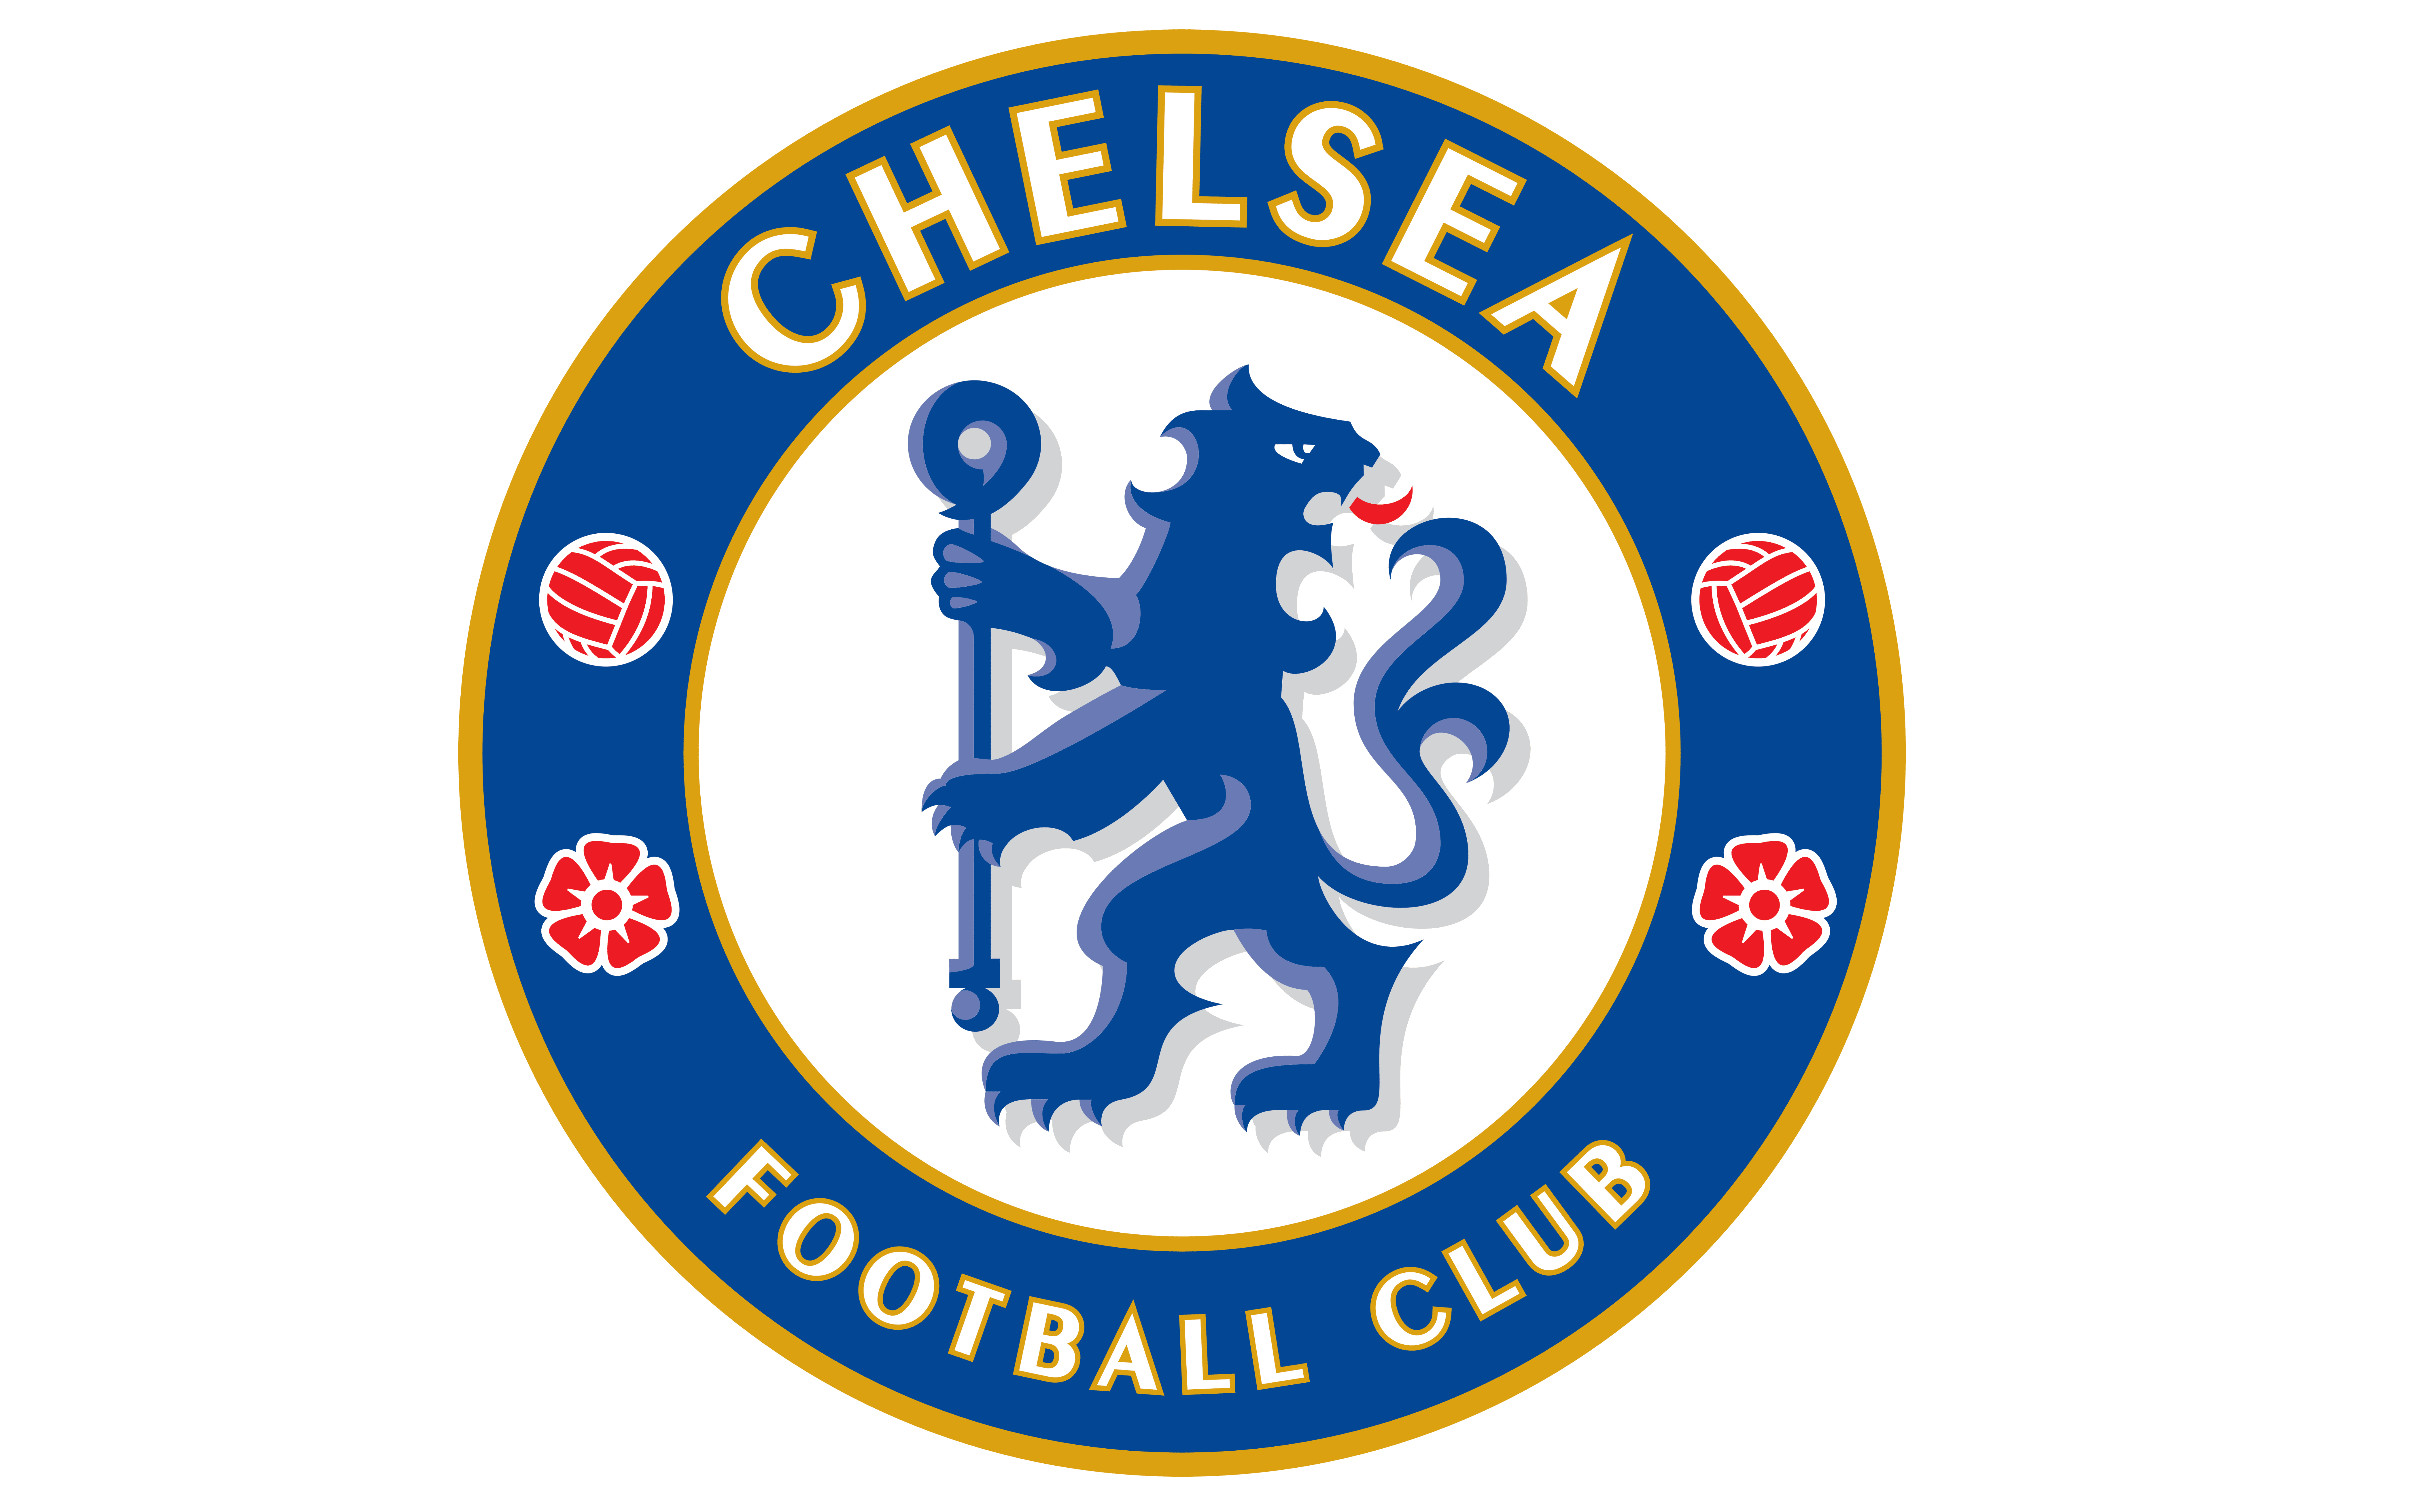 Chelsea logo chelsea symbol meaning history and evolution chelsea logo biocorpaavc Images